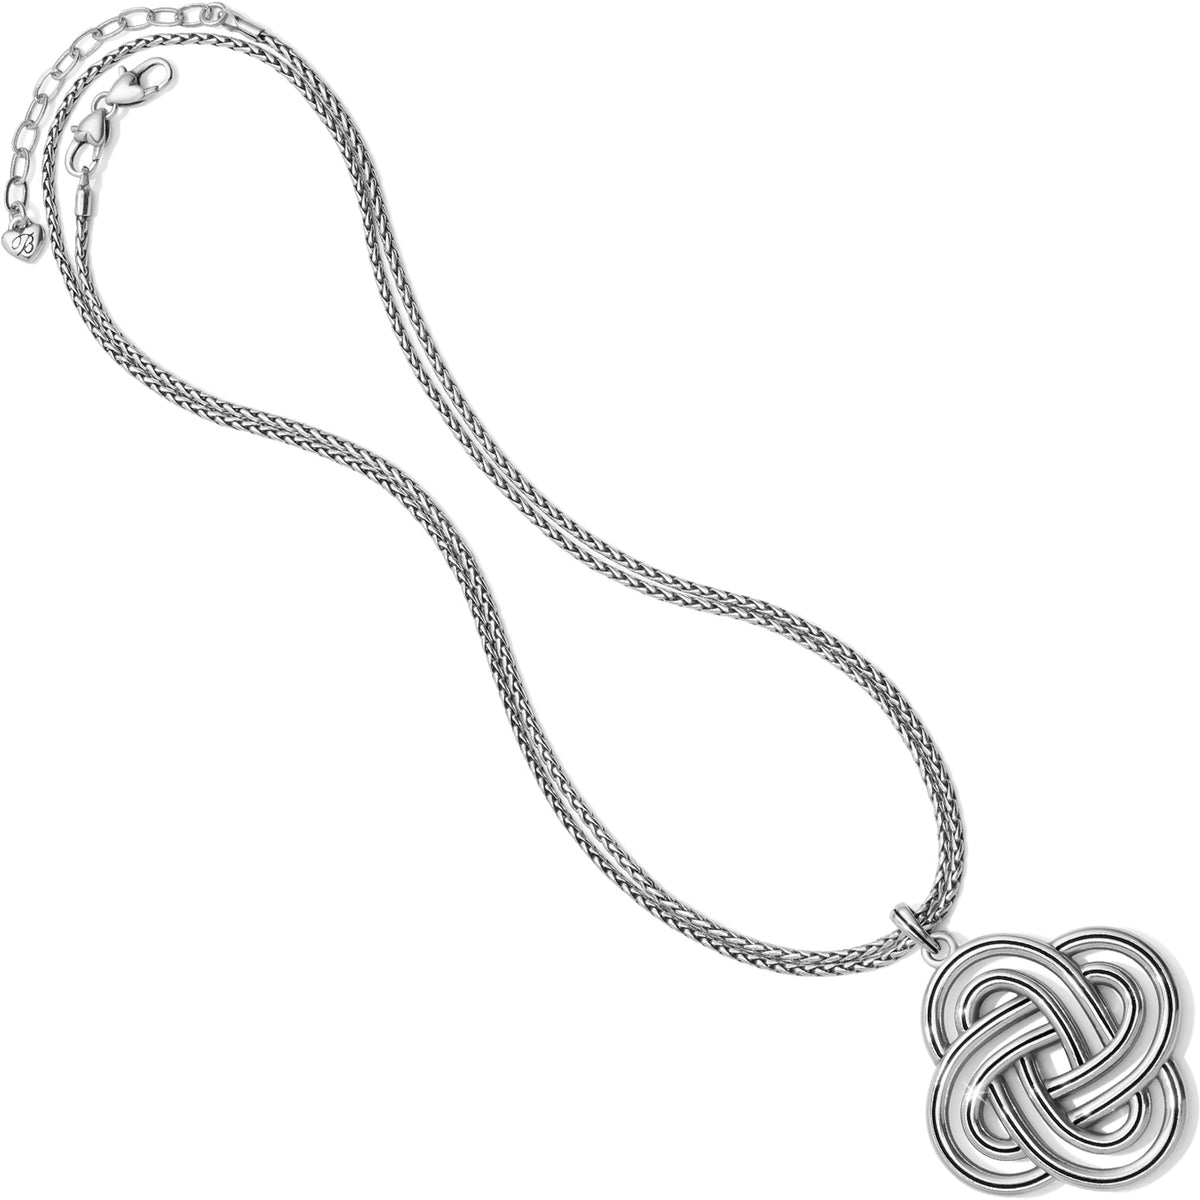 Interlok Spiral Statement Convertible Necklace